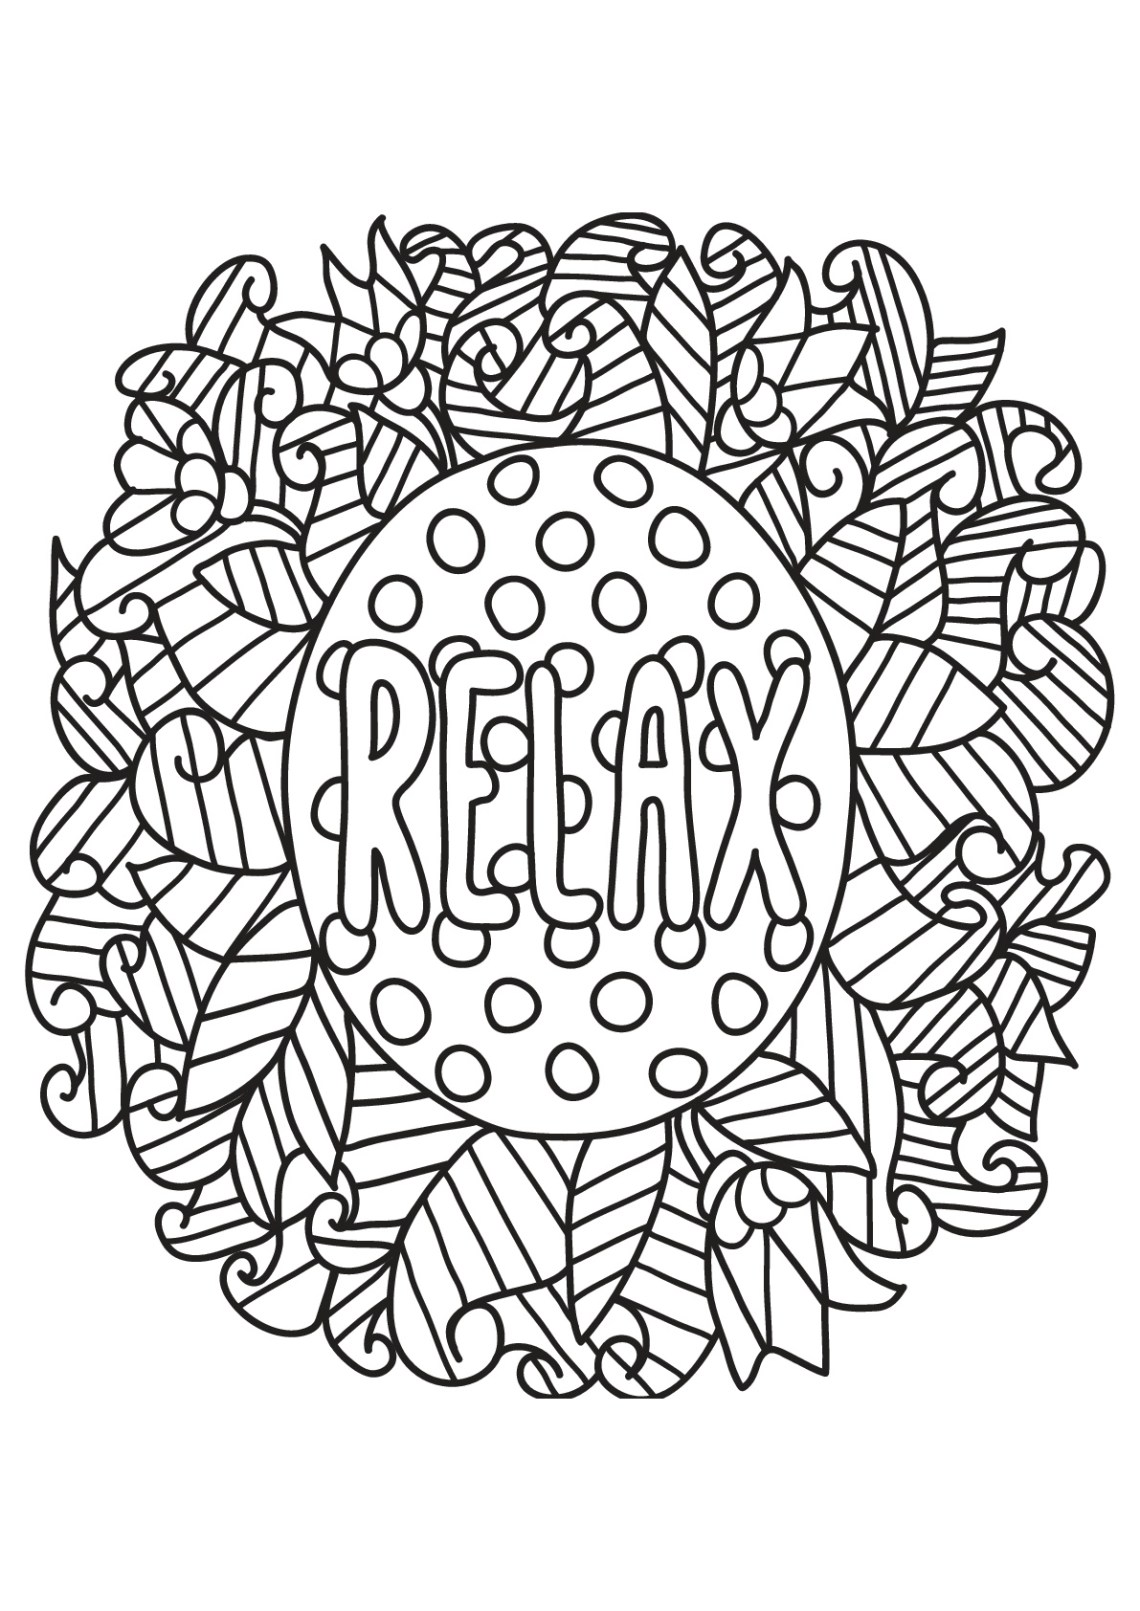 Free book quote 19 - Quotes Adult Coloring Pages | printable coloring sheets with quotes